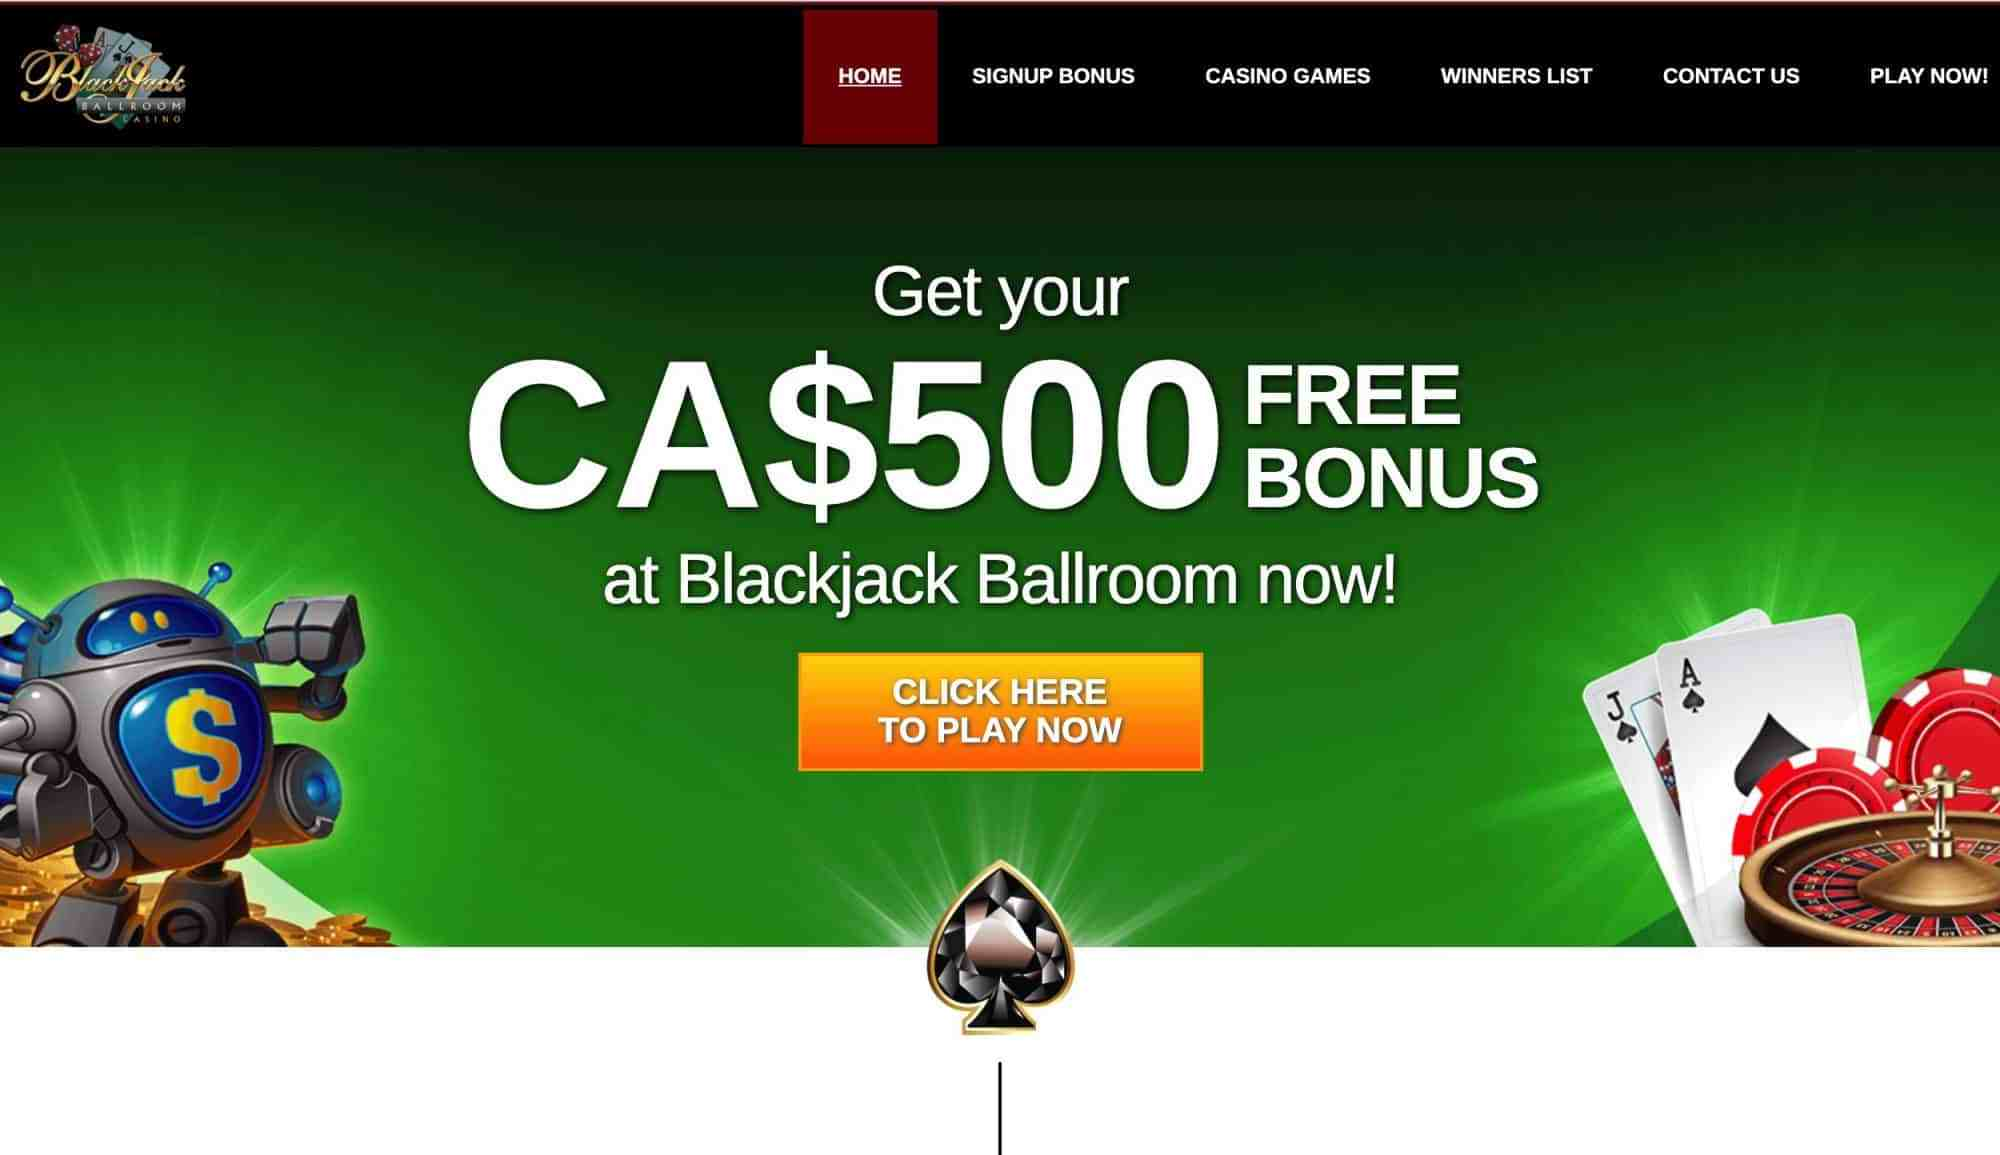 Blackjack Ballroom - Get up to $500 free with 175% match bonus